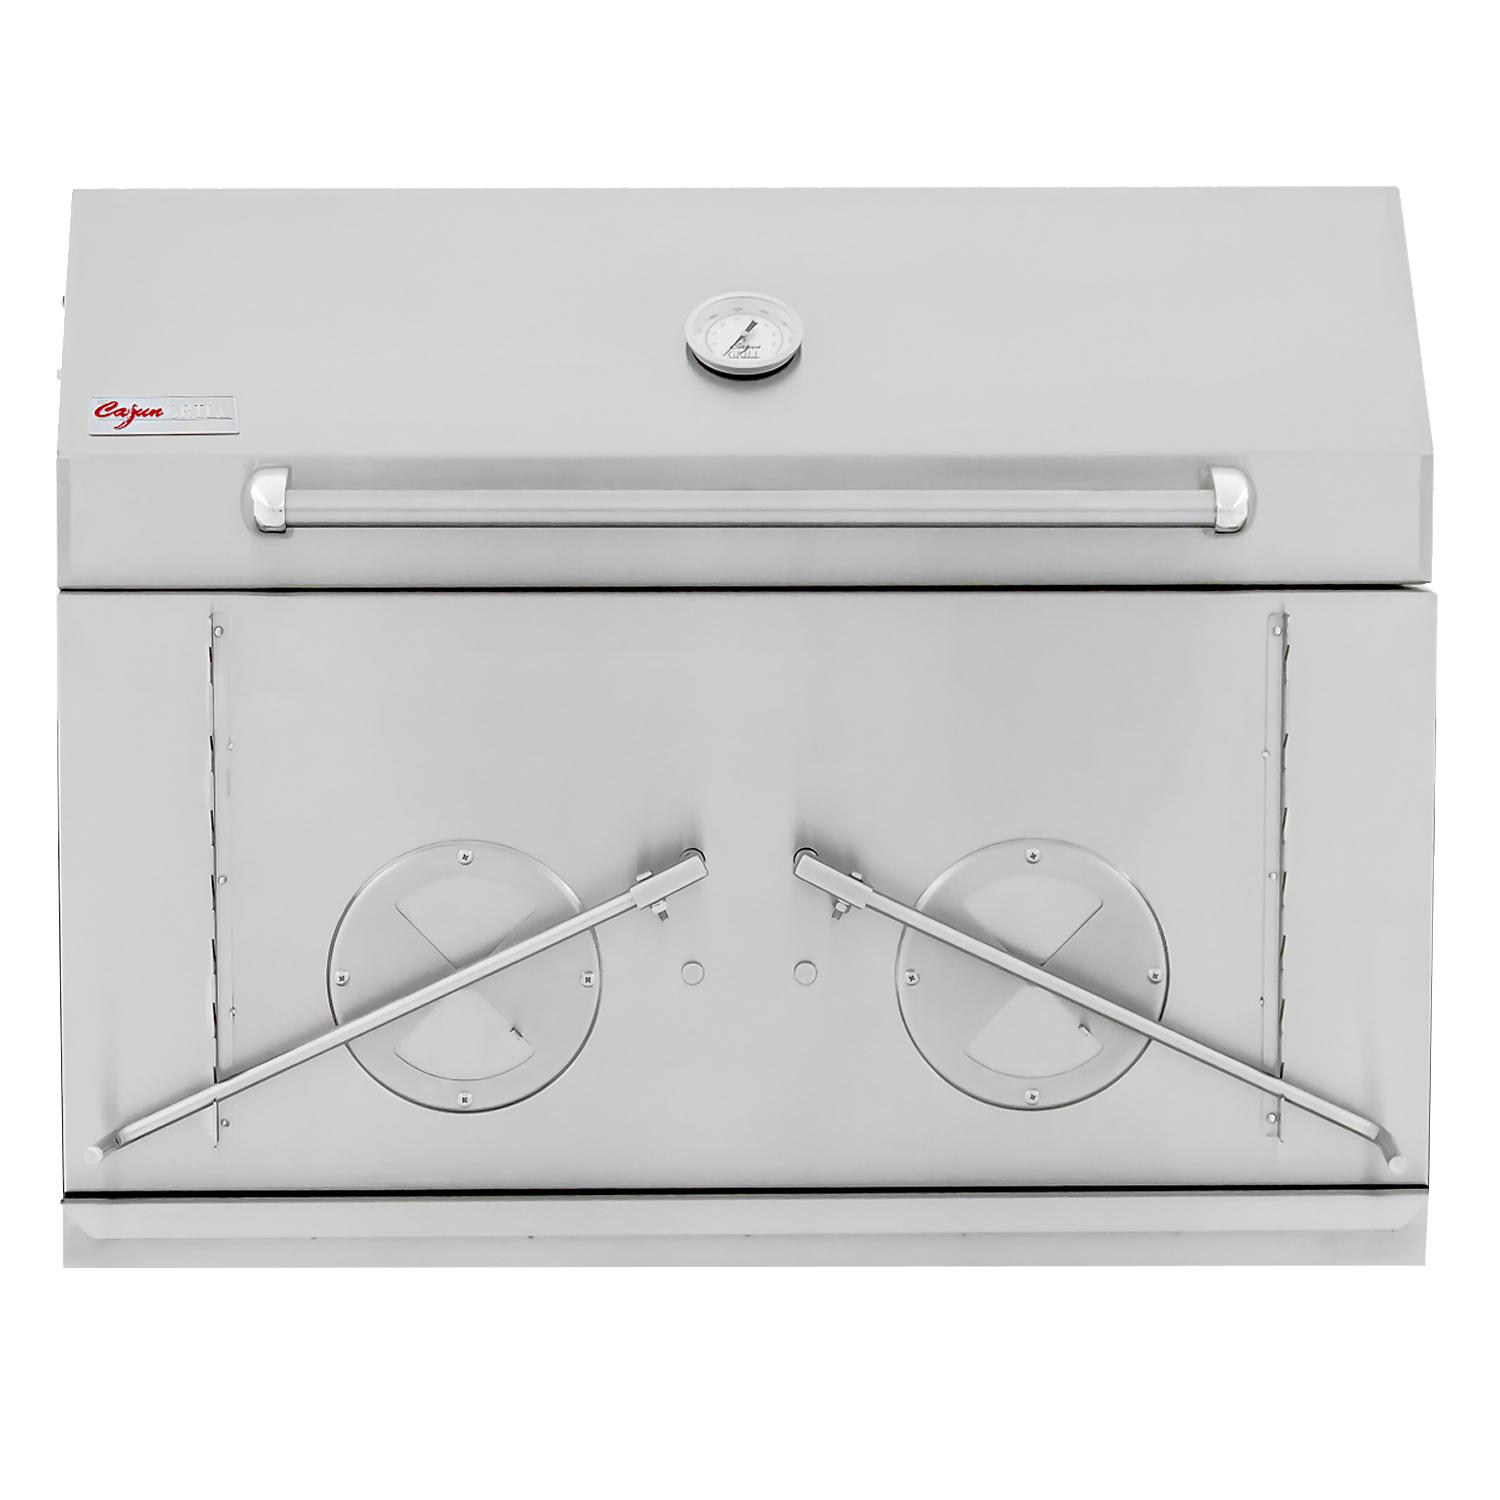 """Cajun Grill Preaux 36"""" Built-in Stainless Steel Charcoal Grill - Pgi-900"""